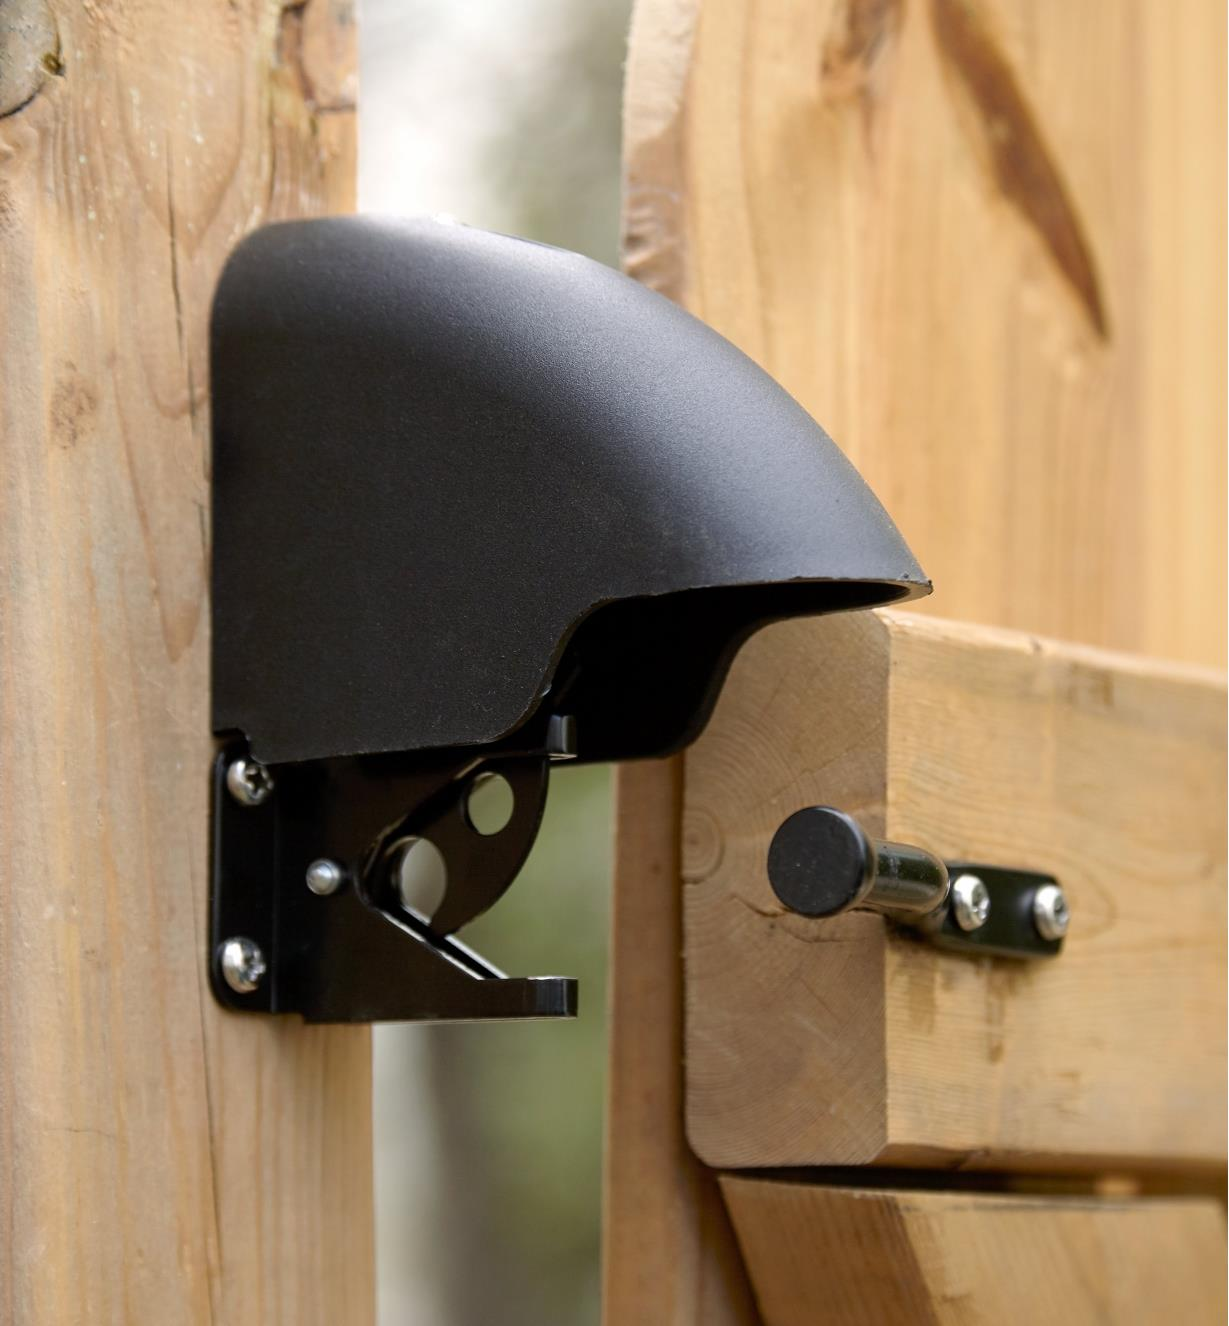 Cover protects the latch assembly of the keyless gate lock